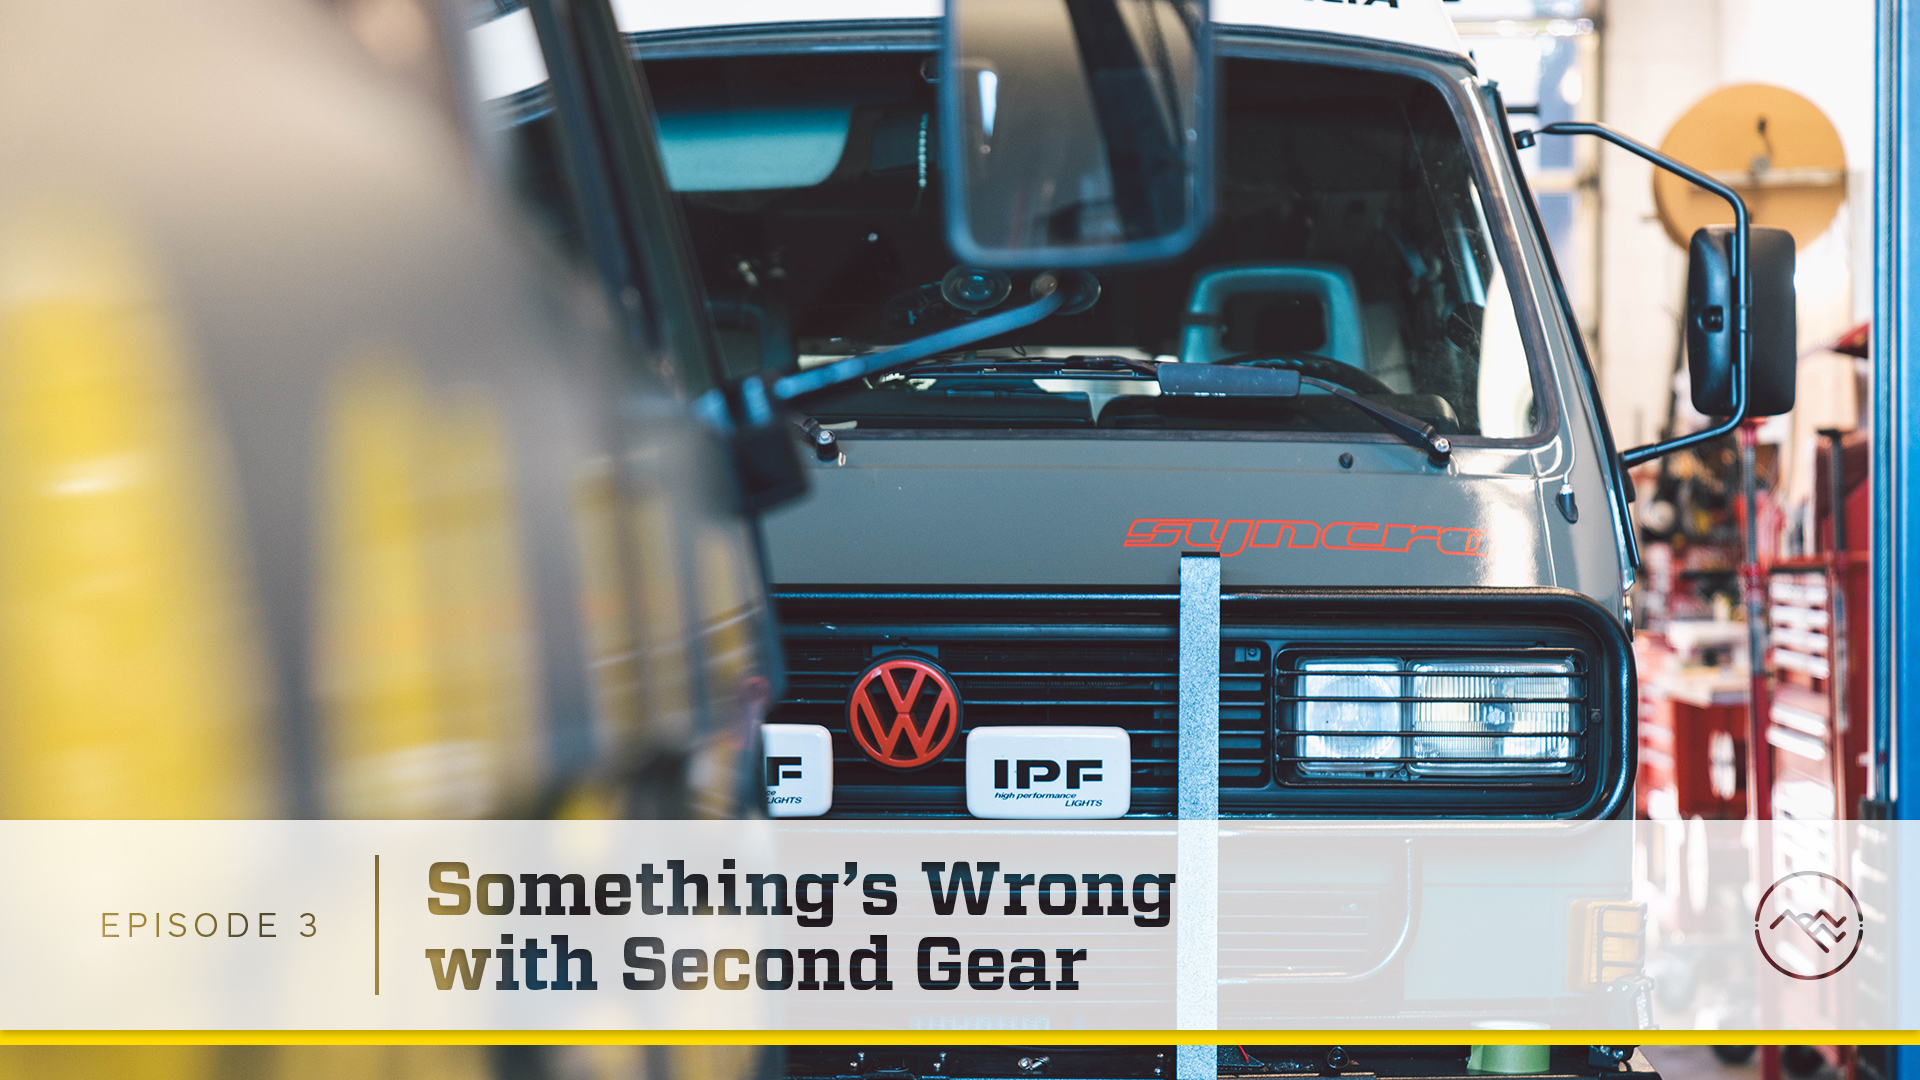 E03: Something's Wrong with Second Gear